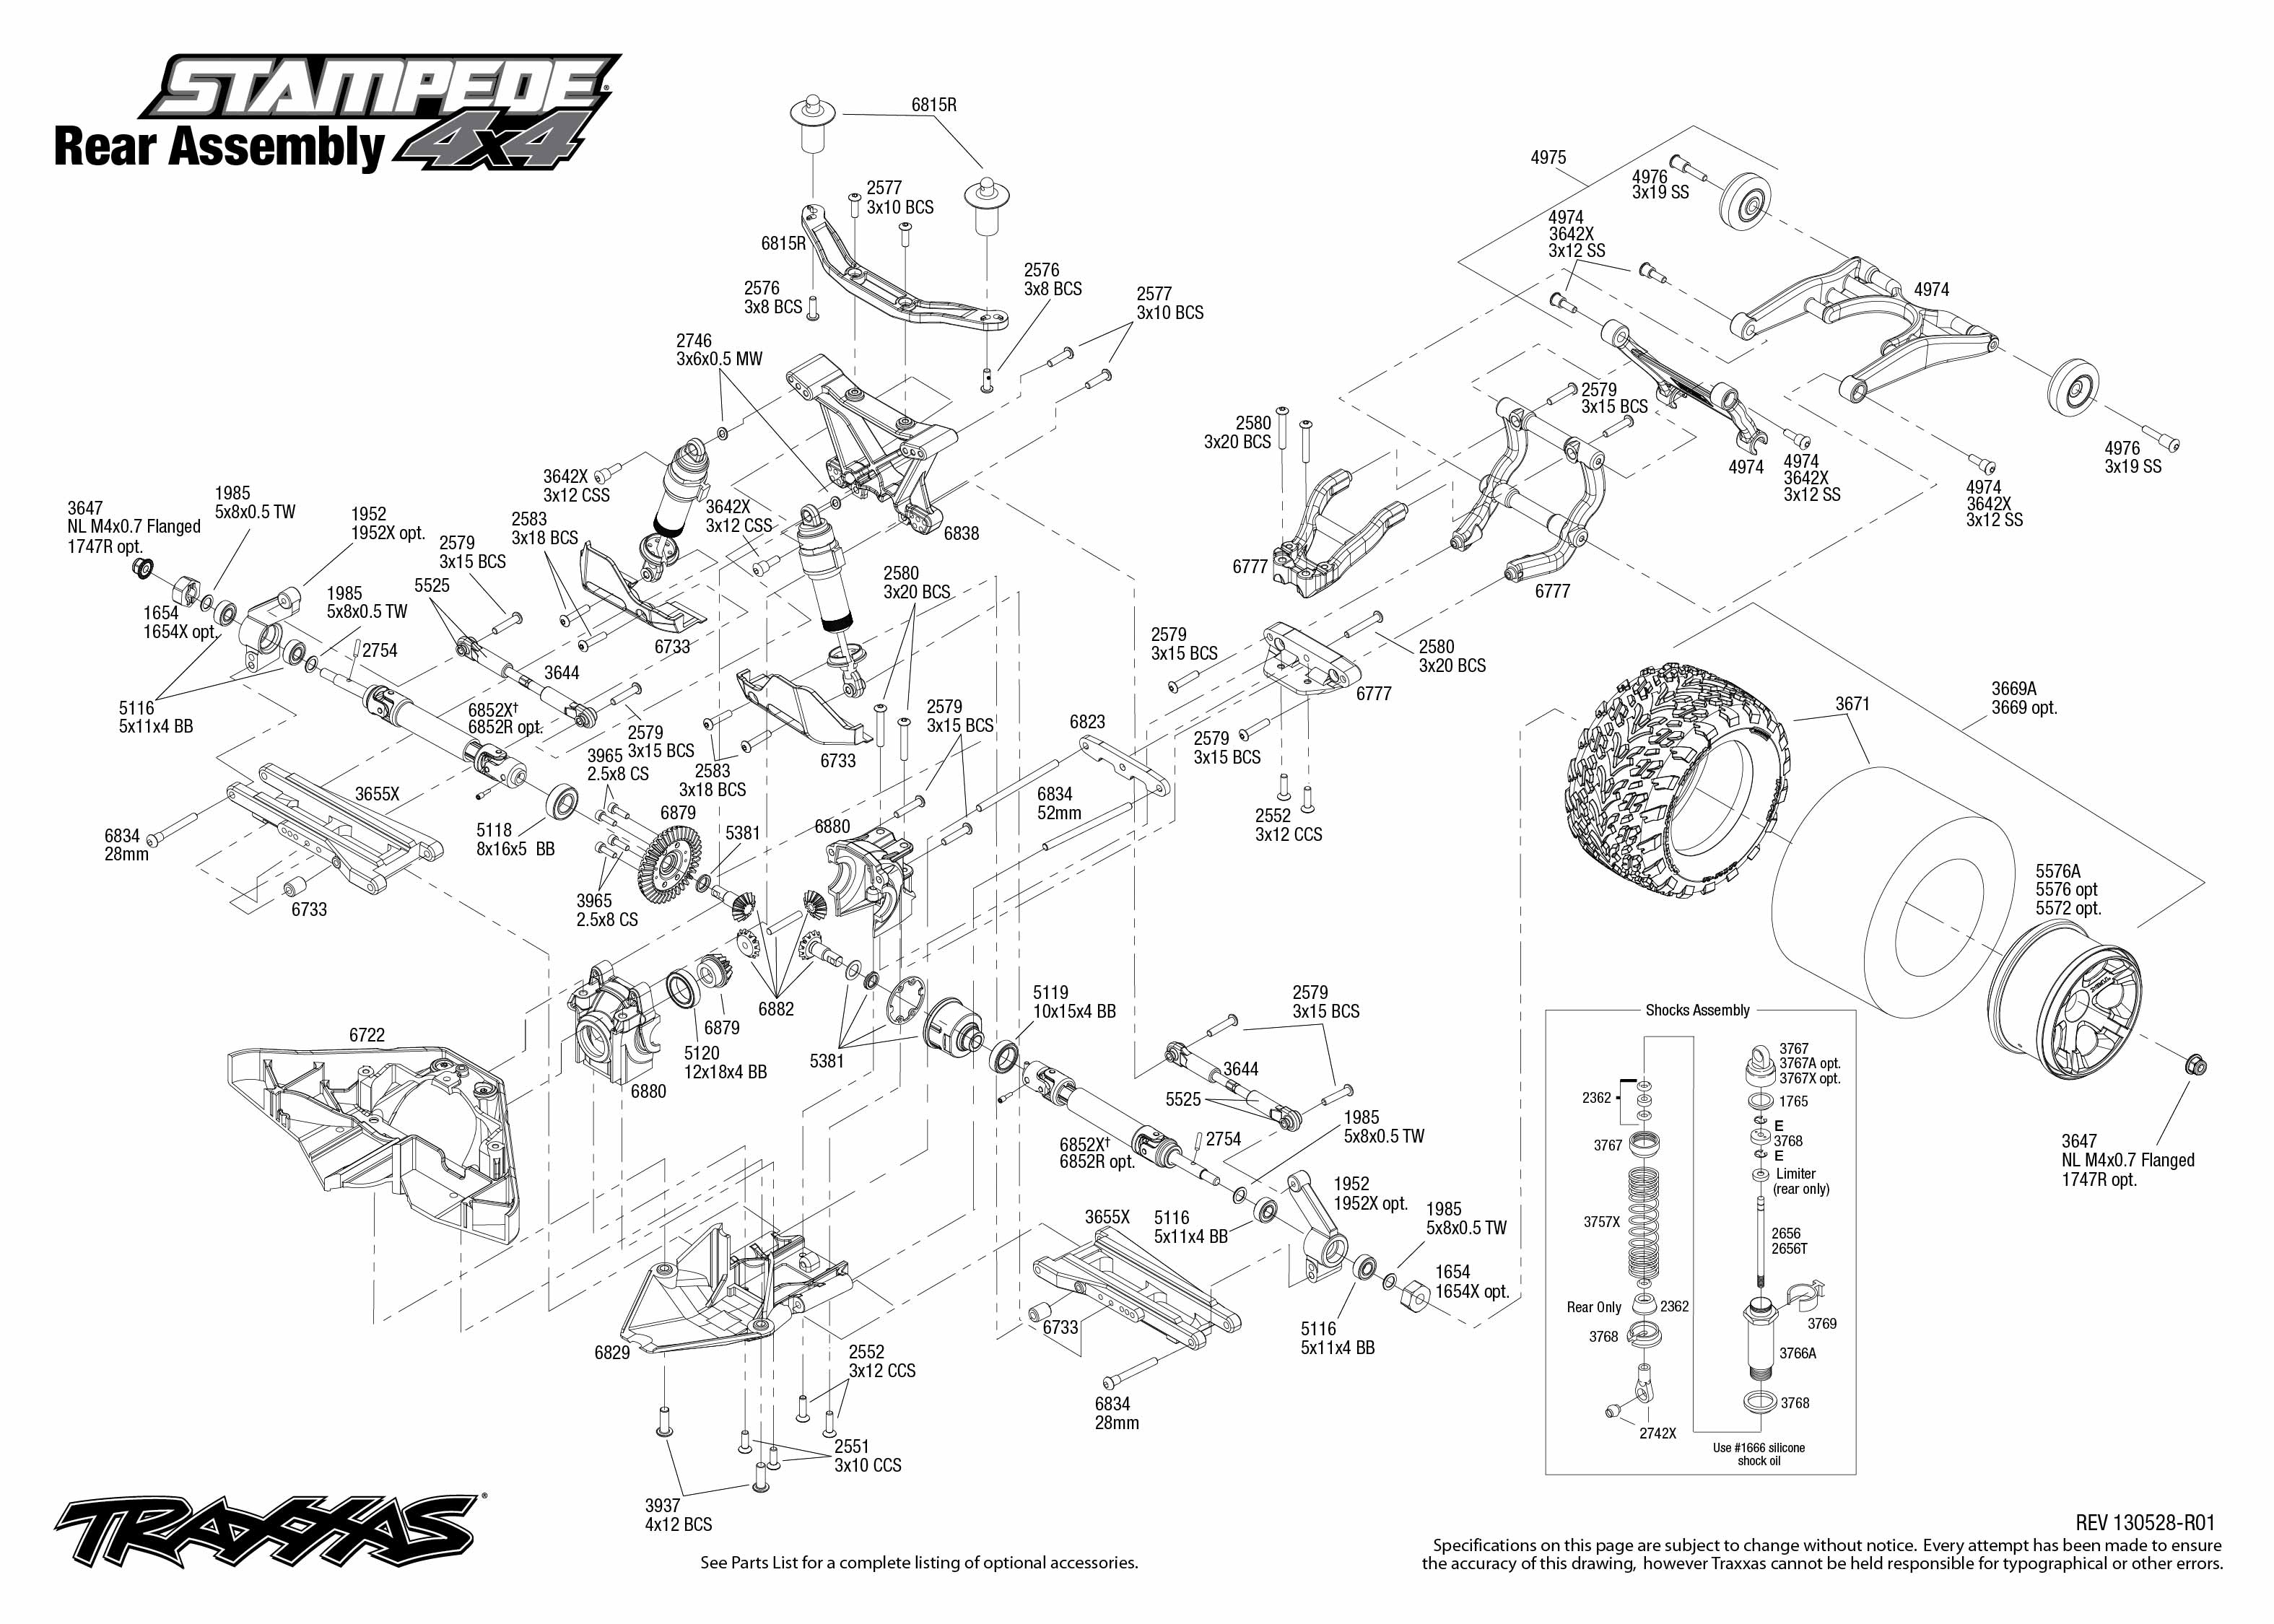 6708L_Stampede 4x4_TQi_Explodedviews 130528_6708 Rear Assembly_0 traxxas 1 10 scale stampede 4x4 vxl 4wd brushless monster truck traxxas stampede wiring diagram at panicattacktreatment.co